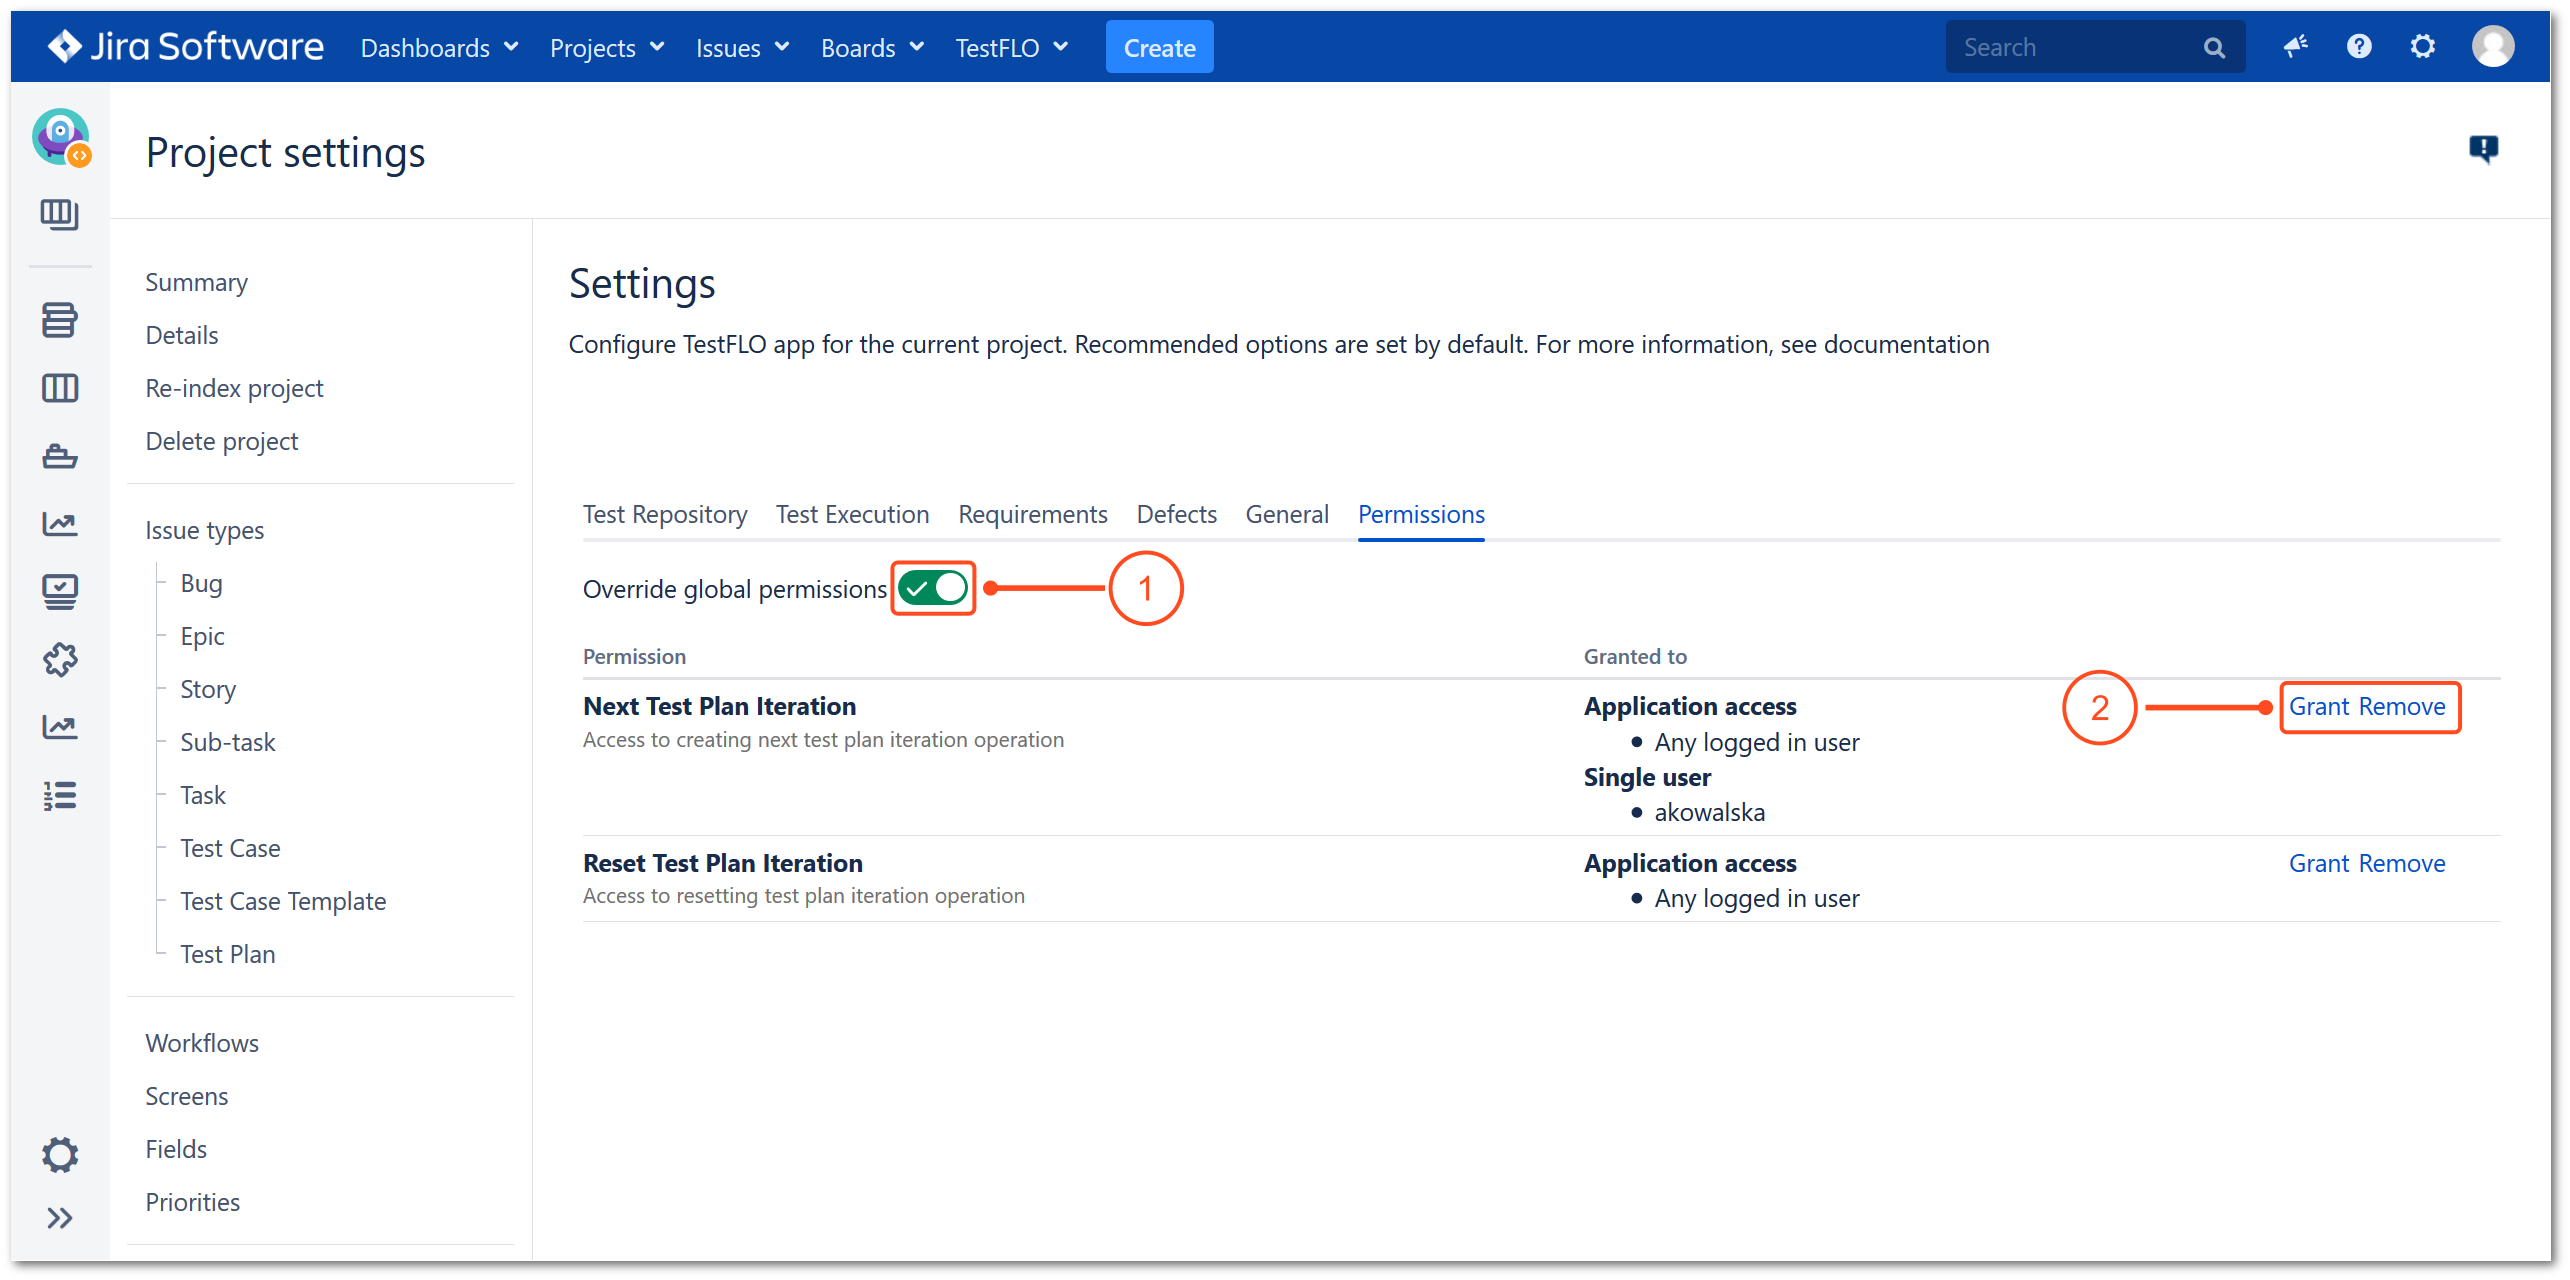 Override global permissions in project settings